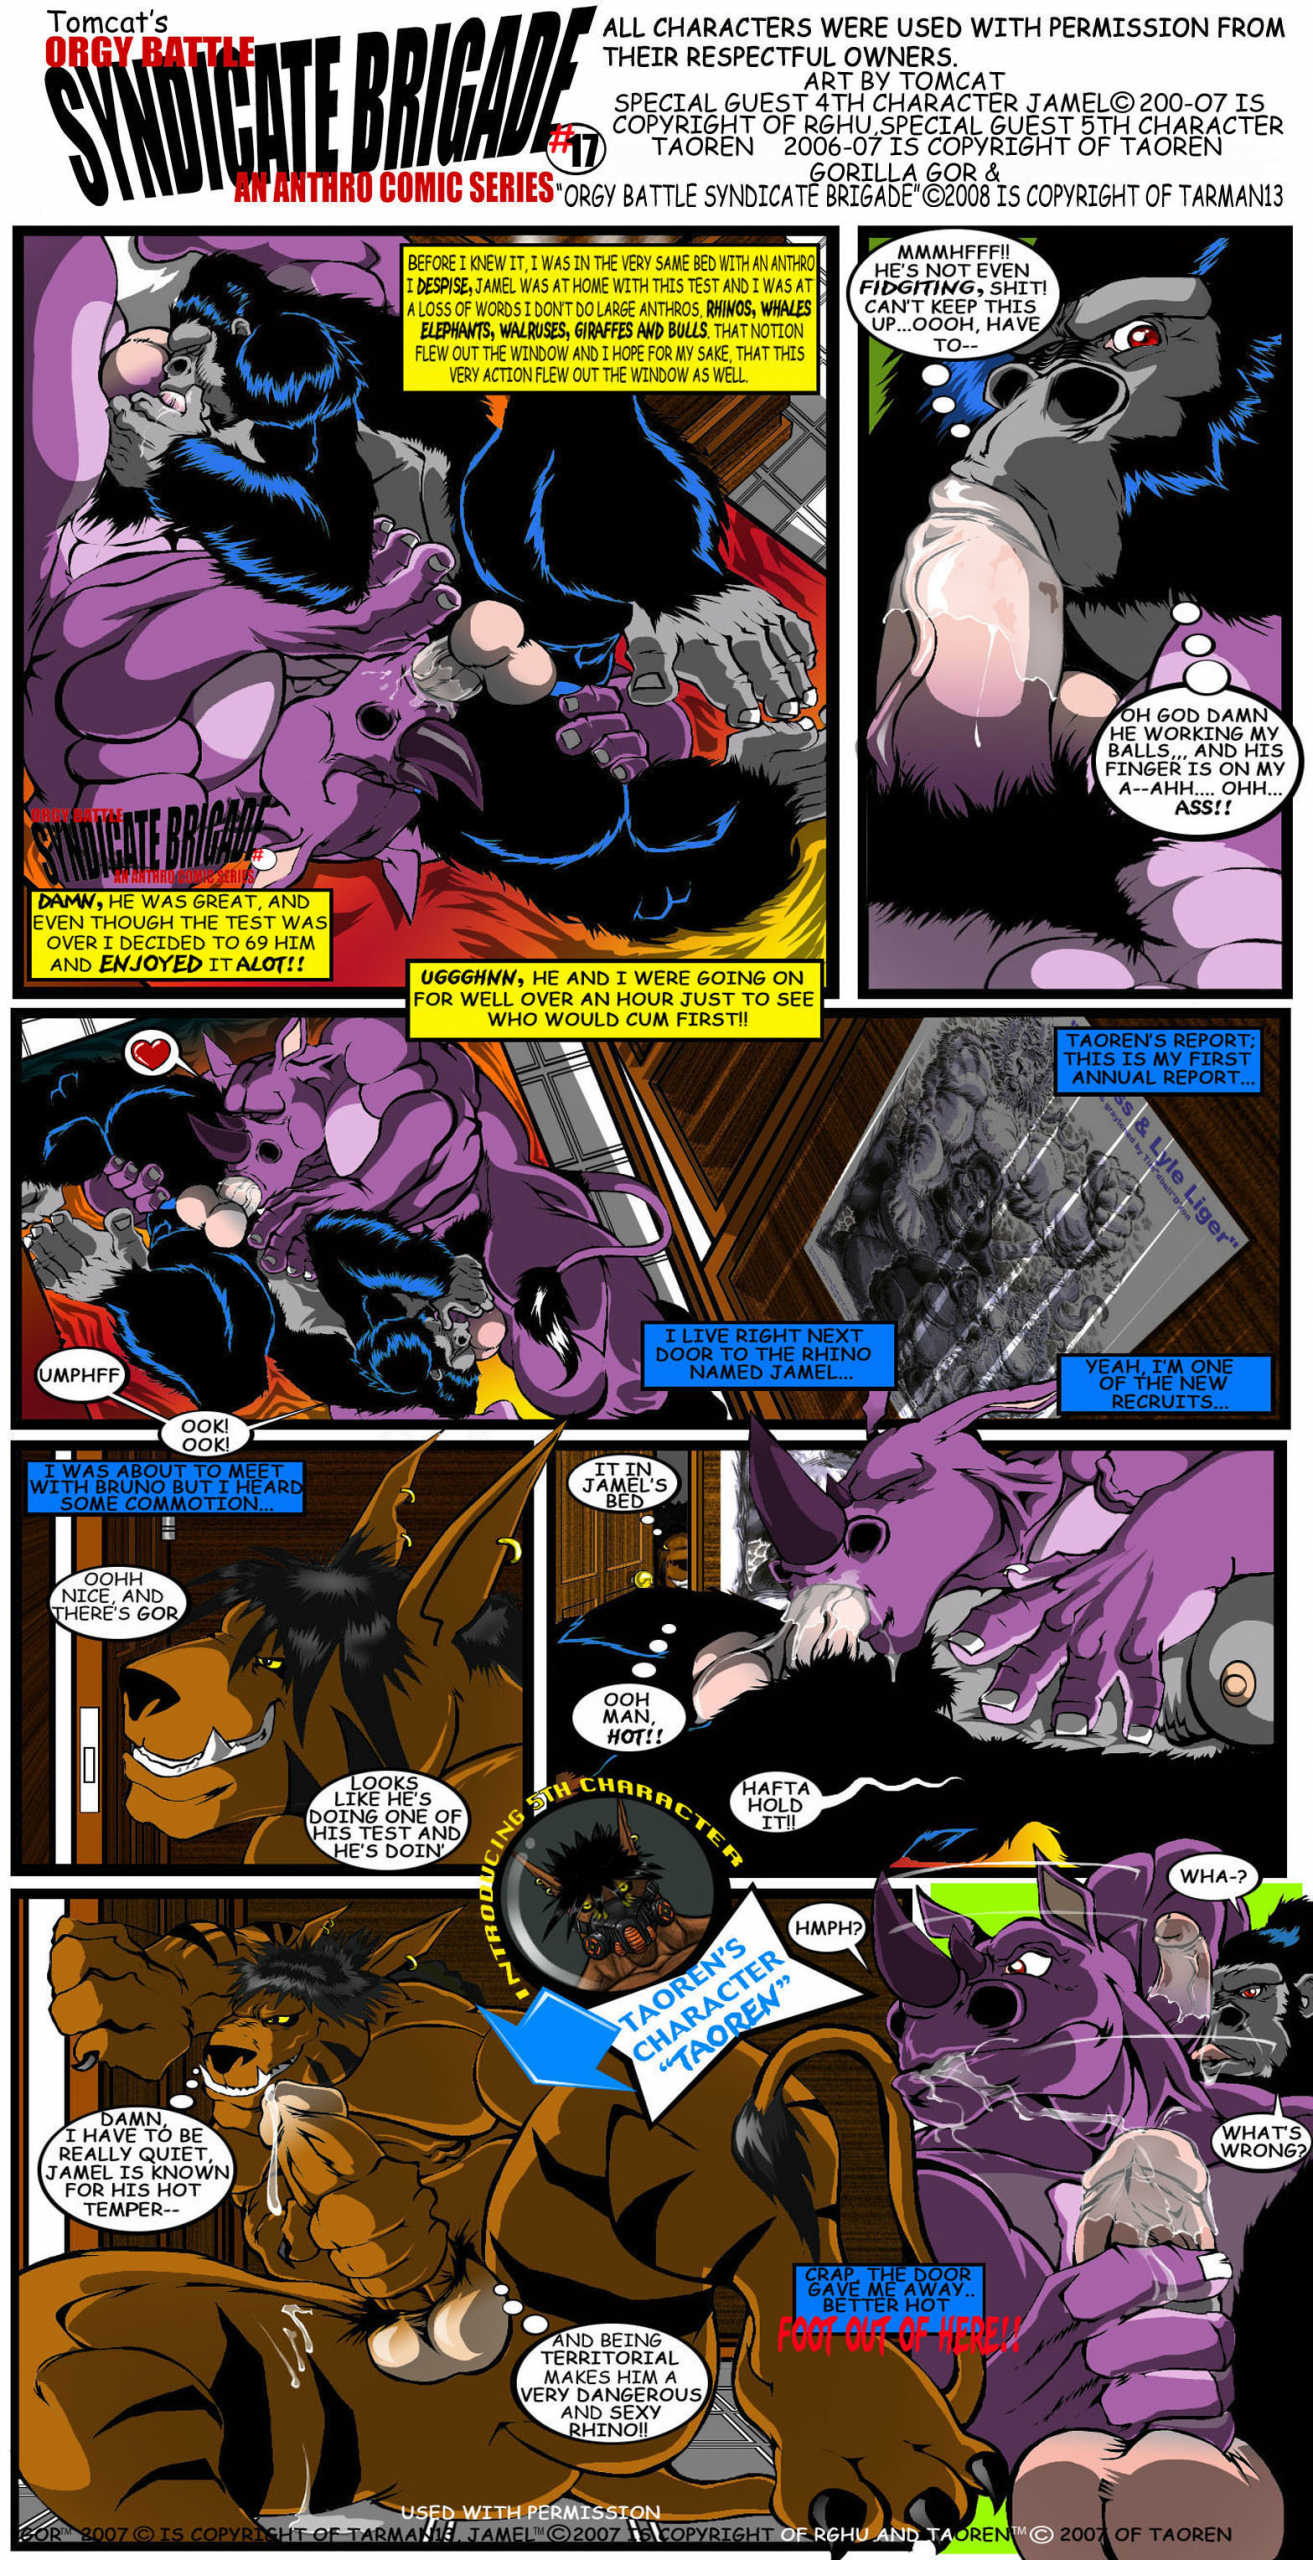 168199_Tomcat_syndicate_comic_page_17